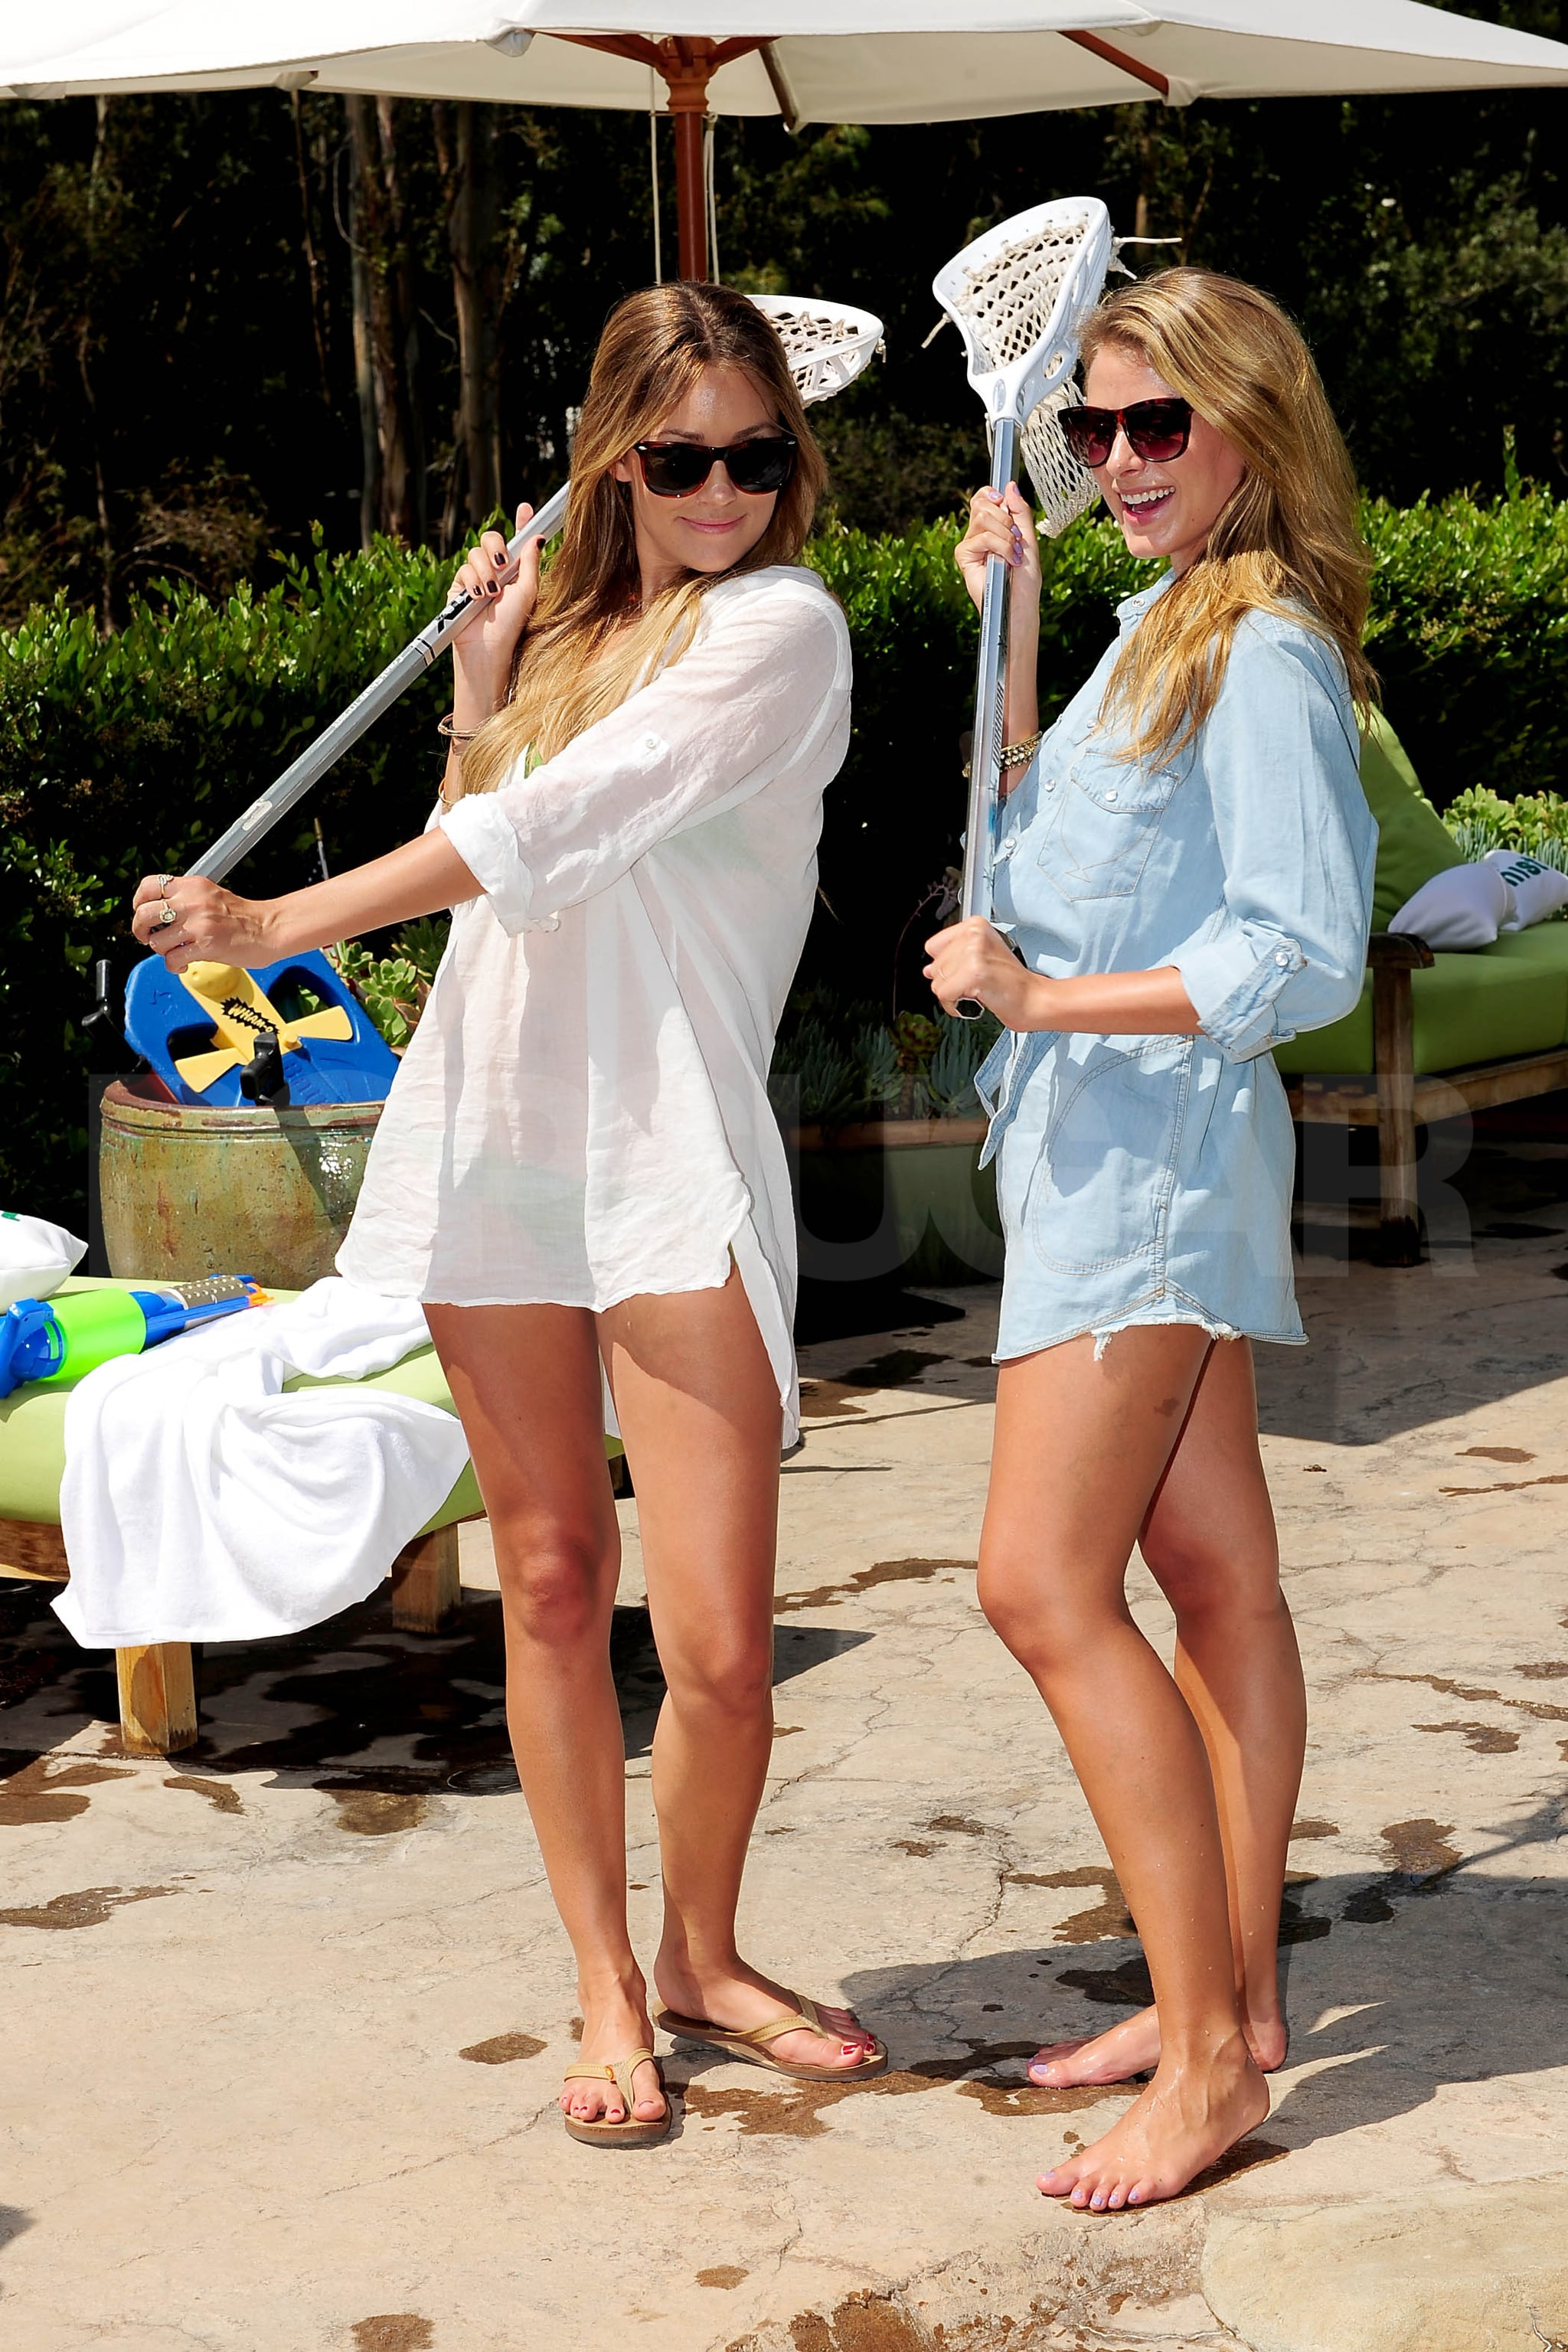 Photos Of Lauren Conrad And Lo Bosworth Playing Lacrosse